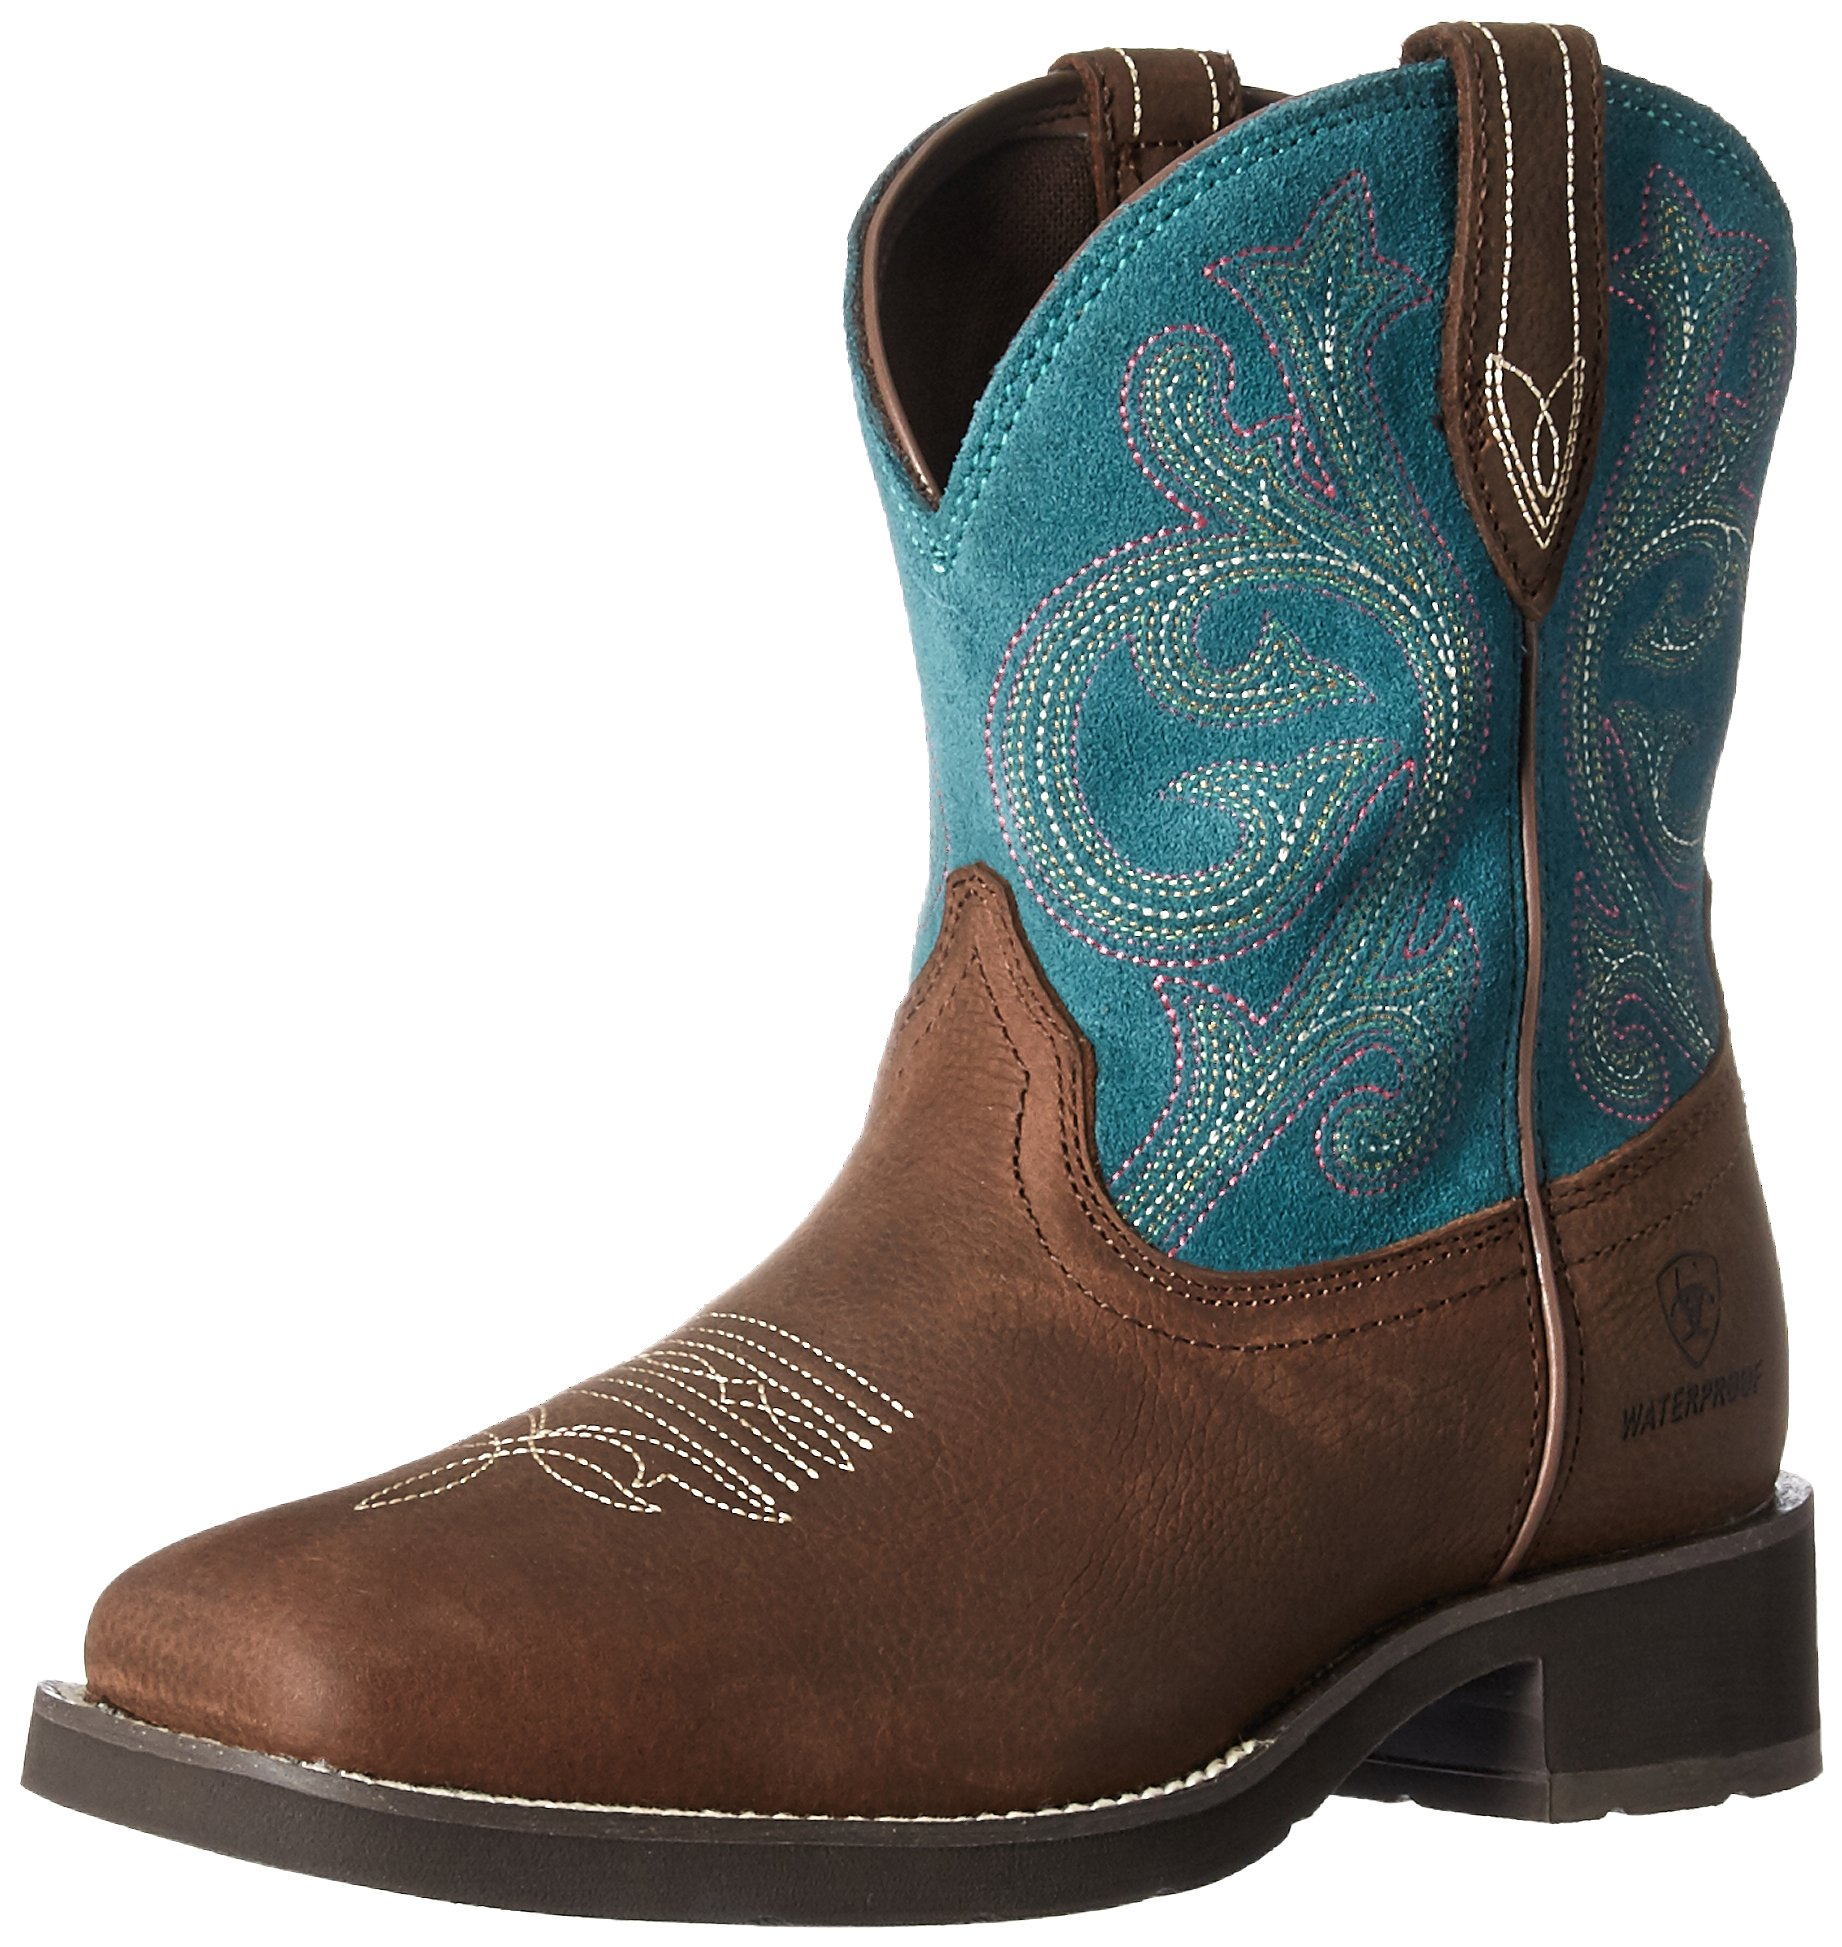 Ariat Women's Shasta H2O Work Boot, Baked Brown, 9.5 B US